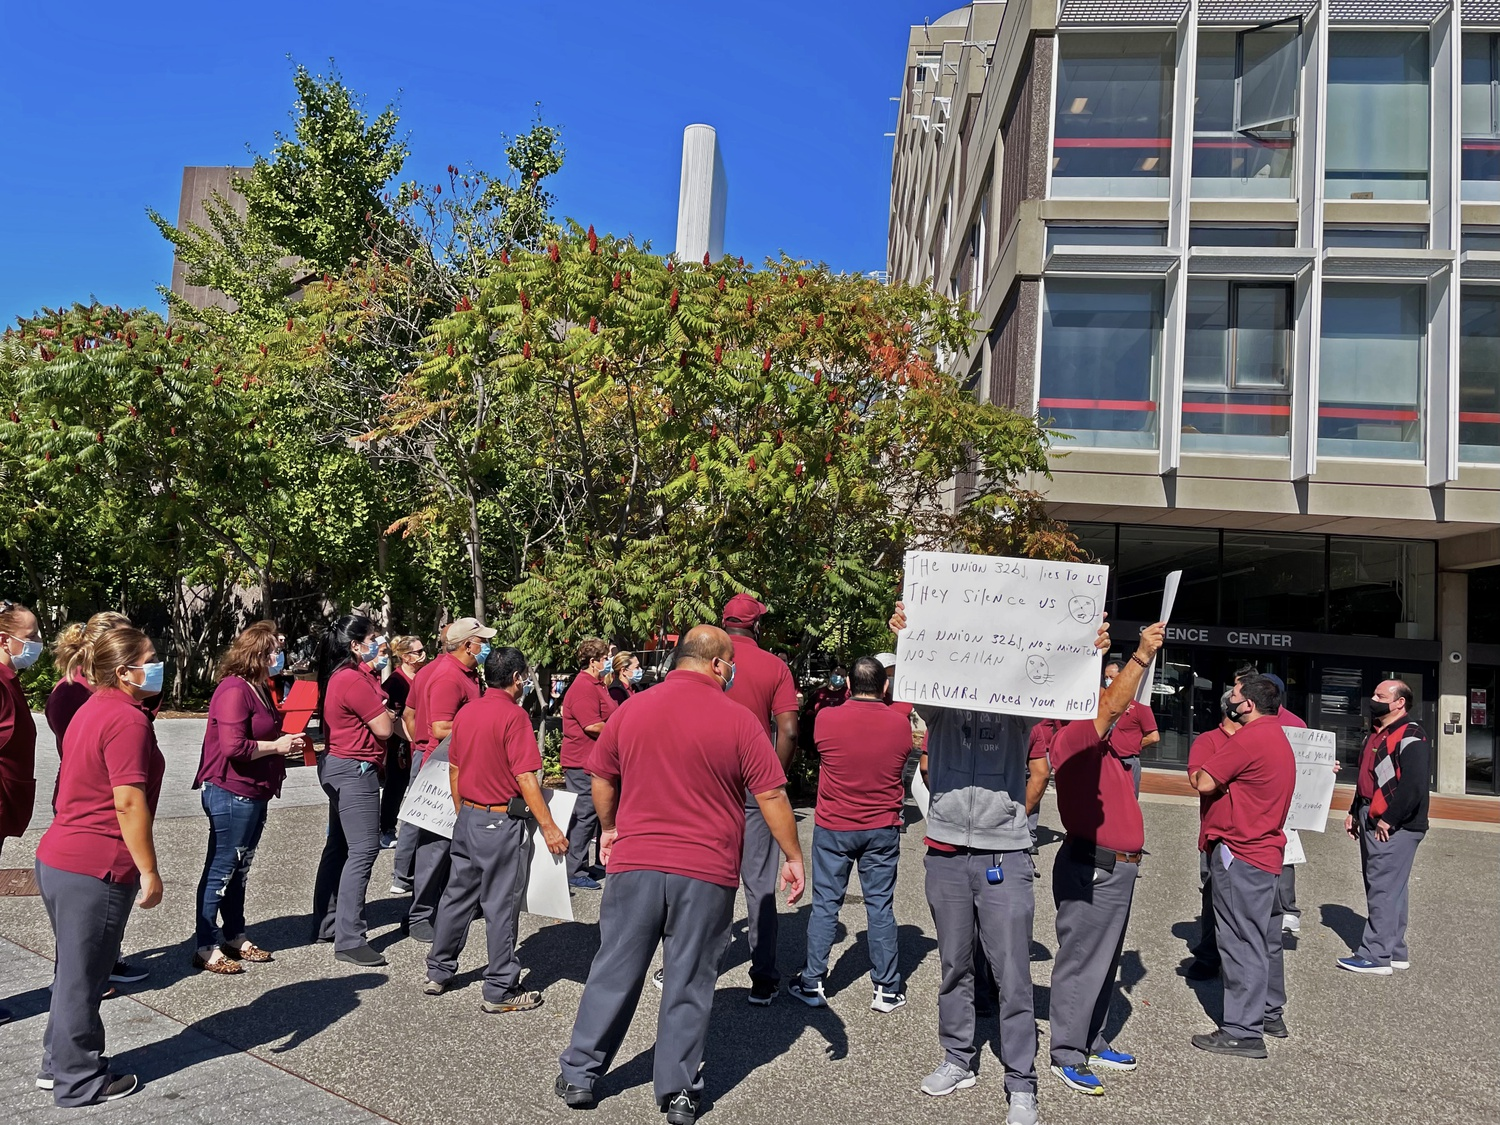 Approximately 25 Harvard custodians rallied in Science Center Plaza Friday, asking the University to postpone the opening of negotiations with their union until intraunion conflicts are resolved.